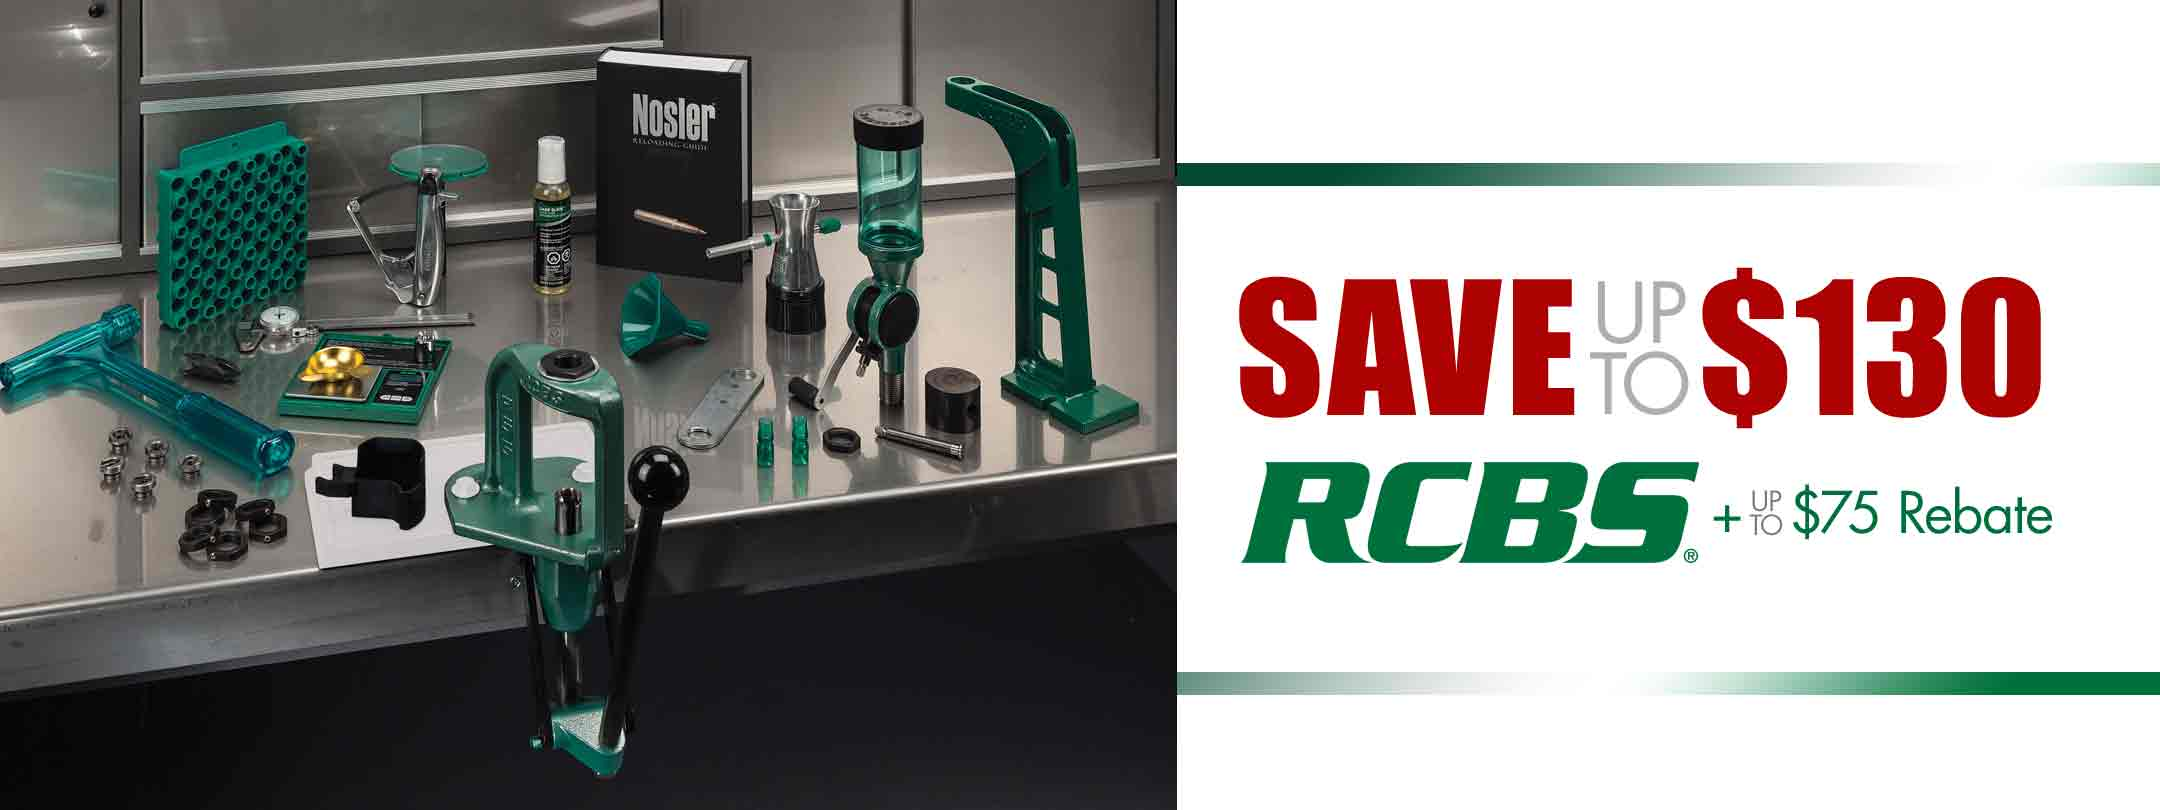 Save up to $130 on RCBS  + up to $75 Rebate